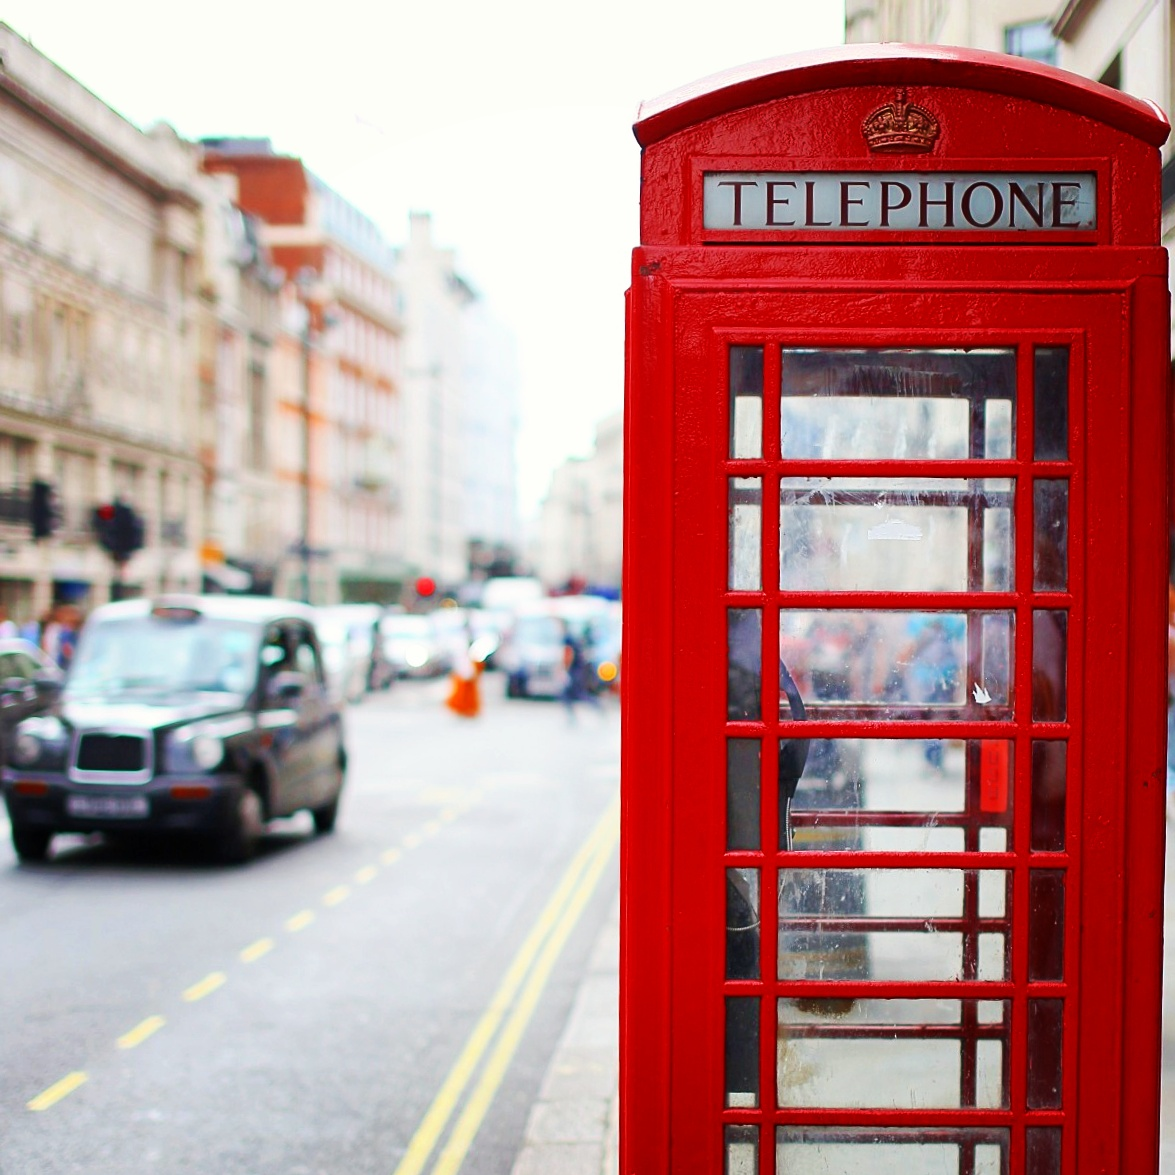 The typical red phonebox in London